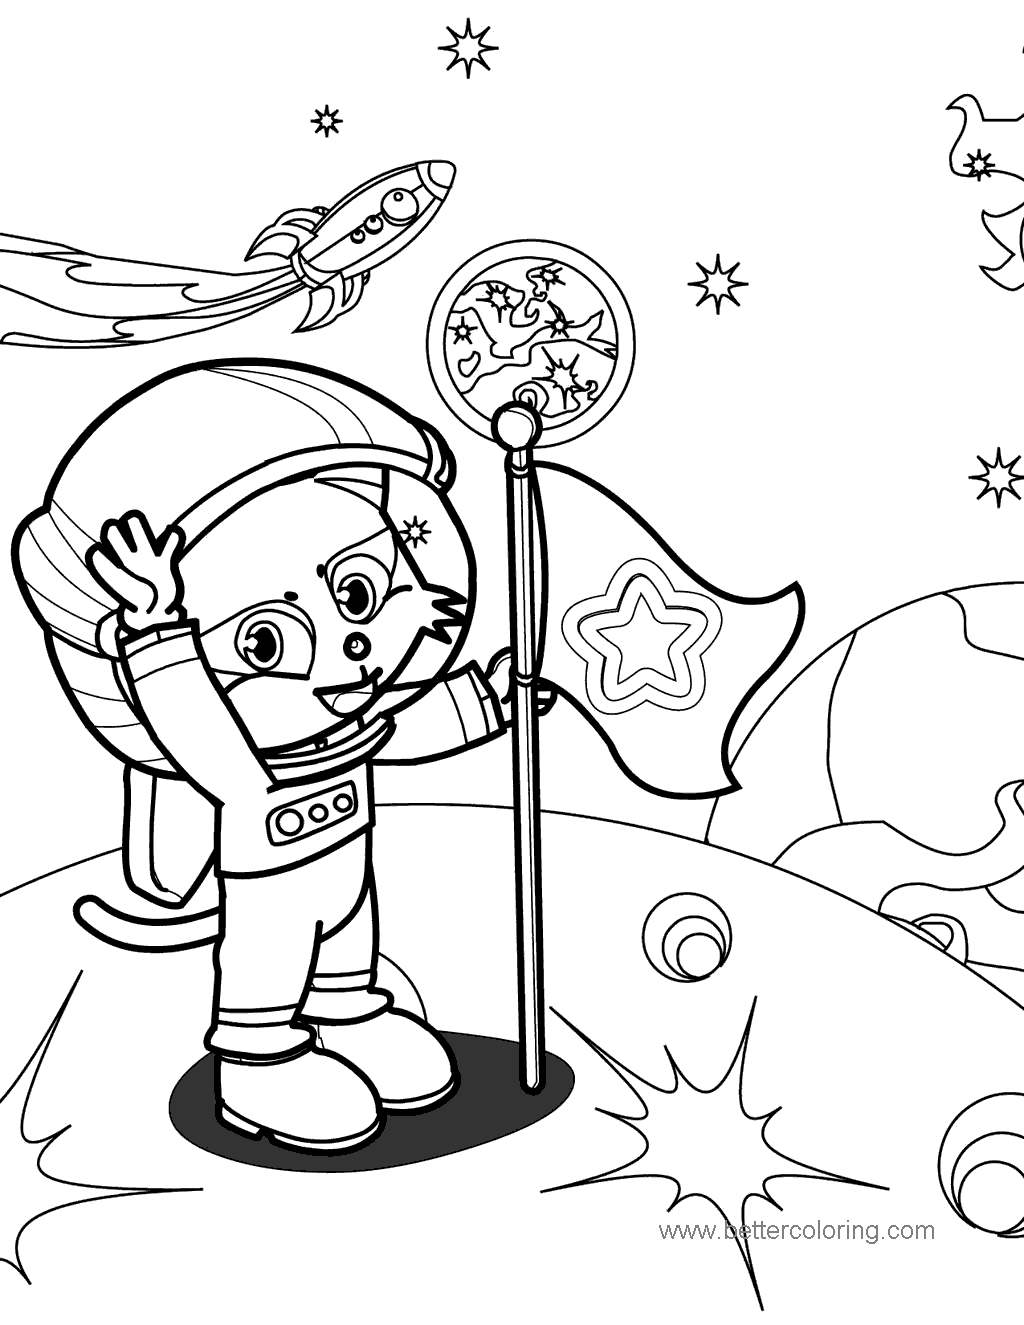 New Astronaut Coloring Pages Linear 242